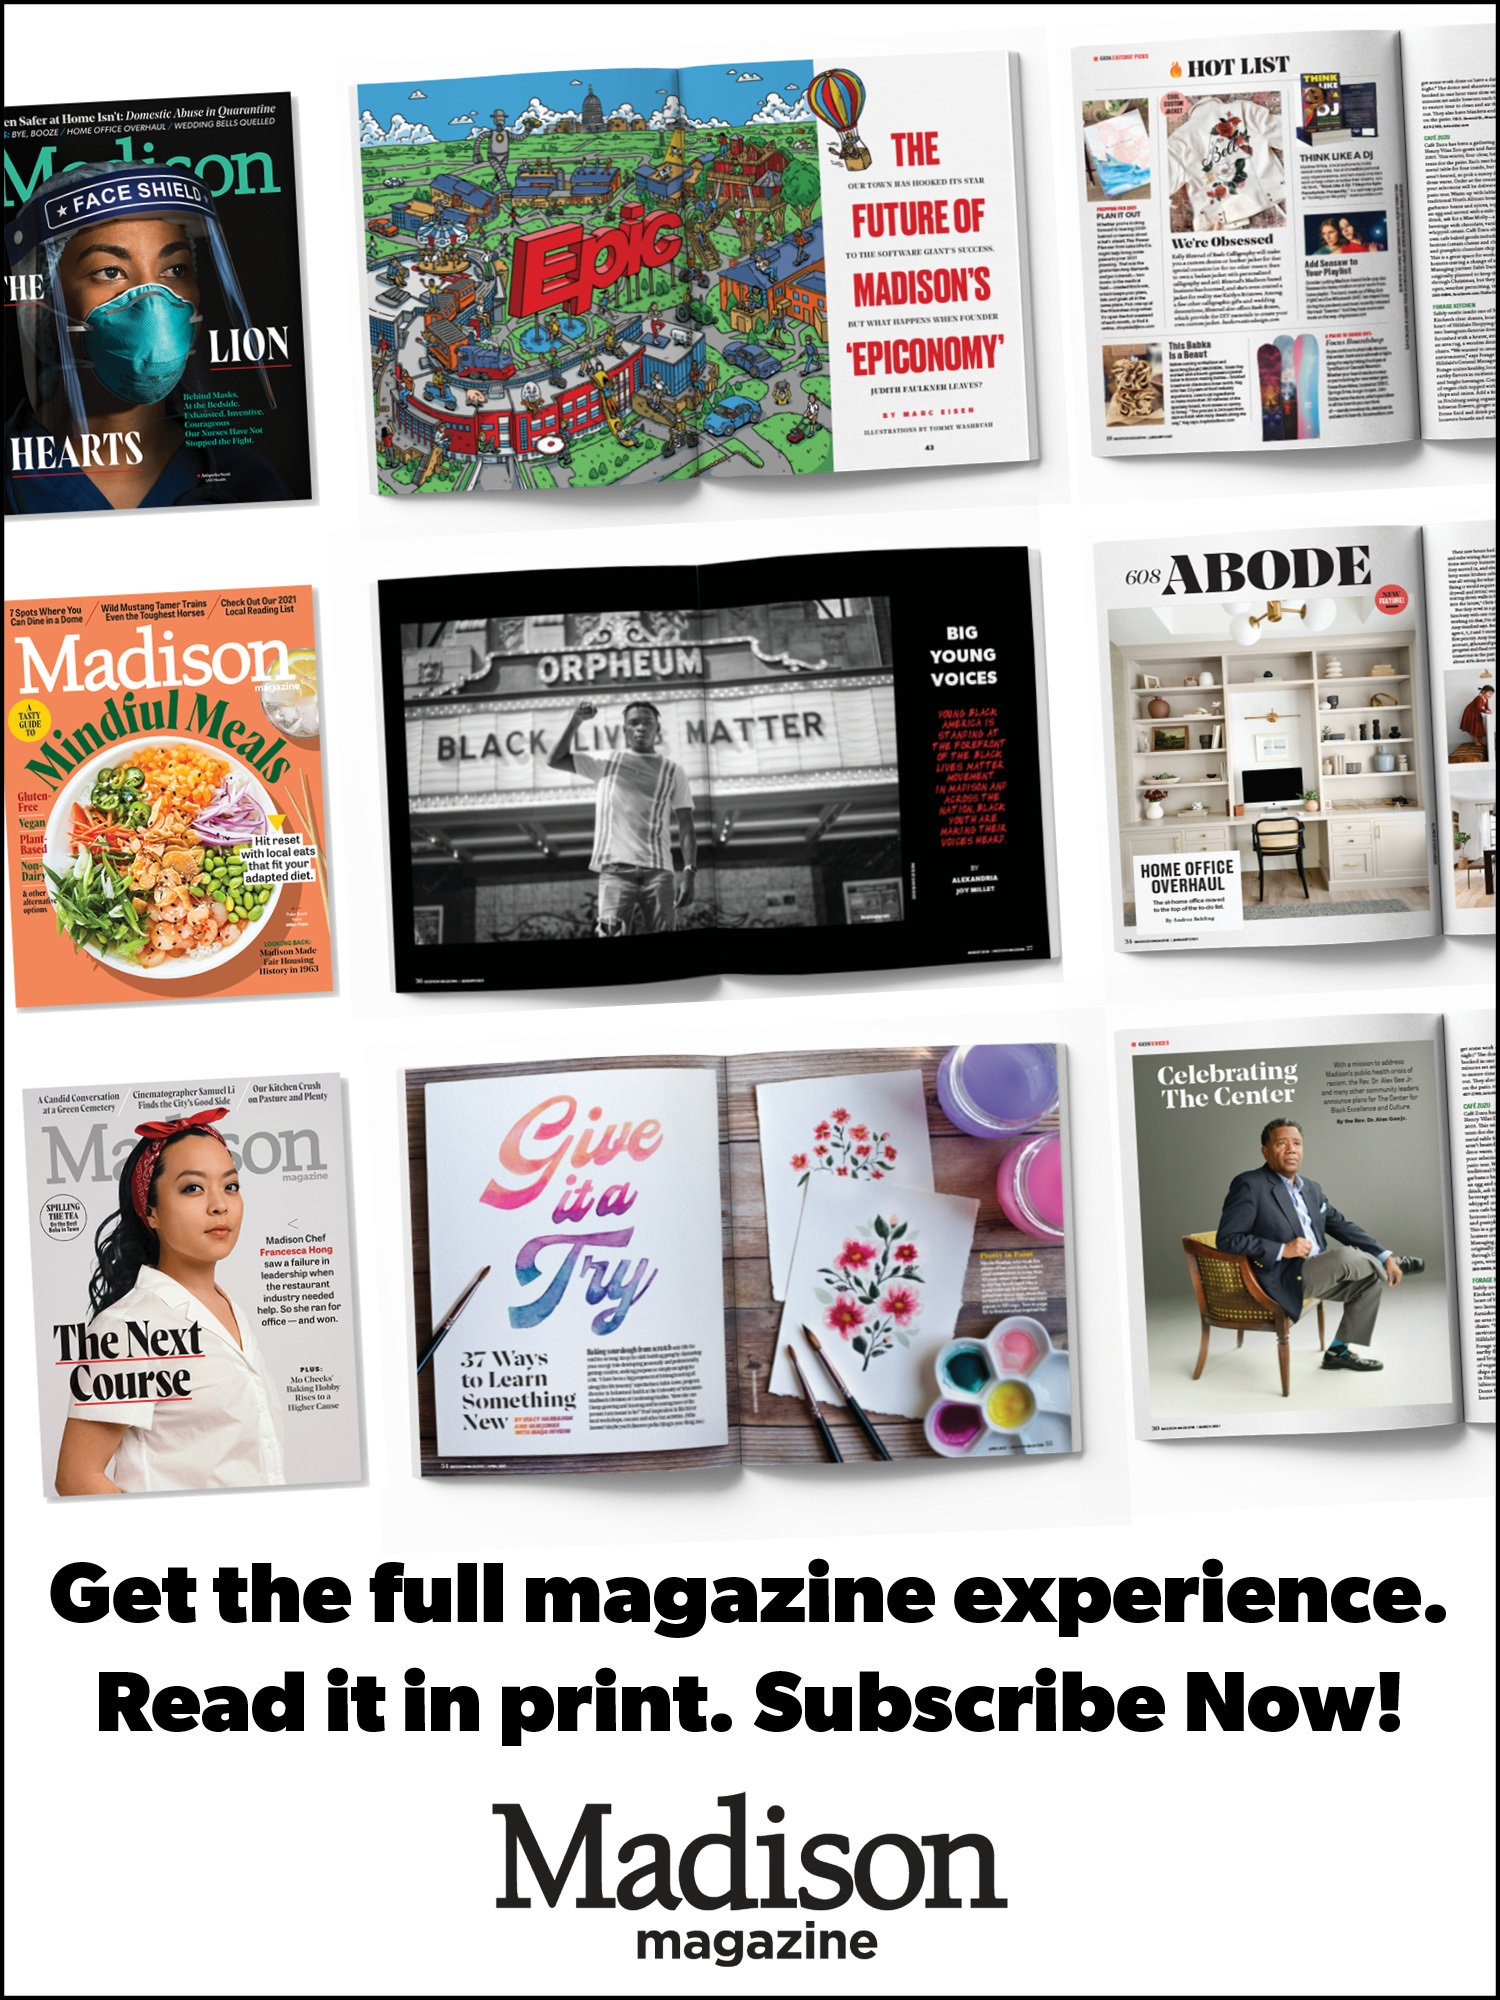 """Image with covers of the magazine with text that says """"Get the full magazine experience. Read it in Print. Subscribe Now!"""""""